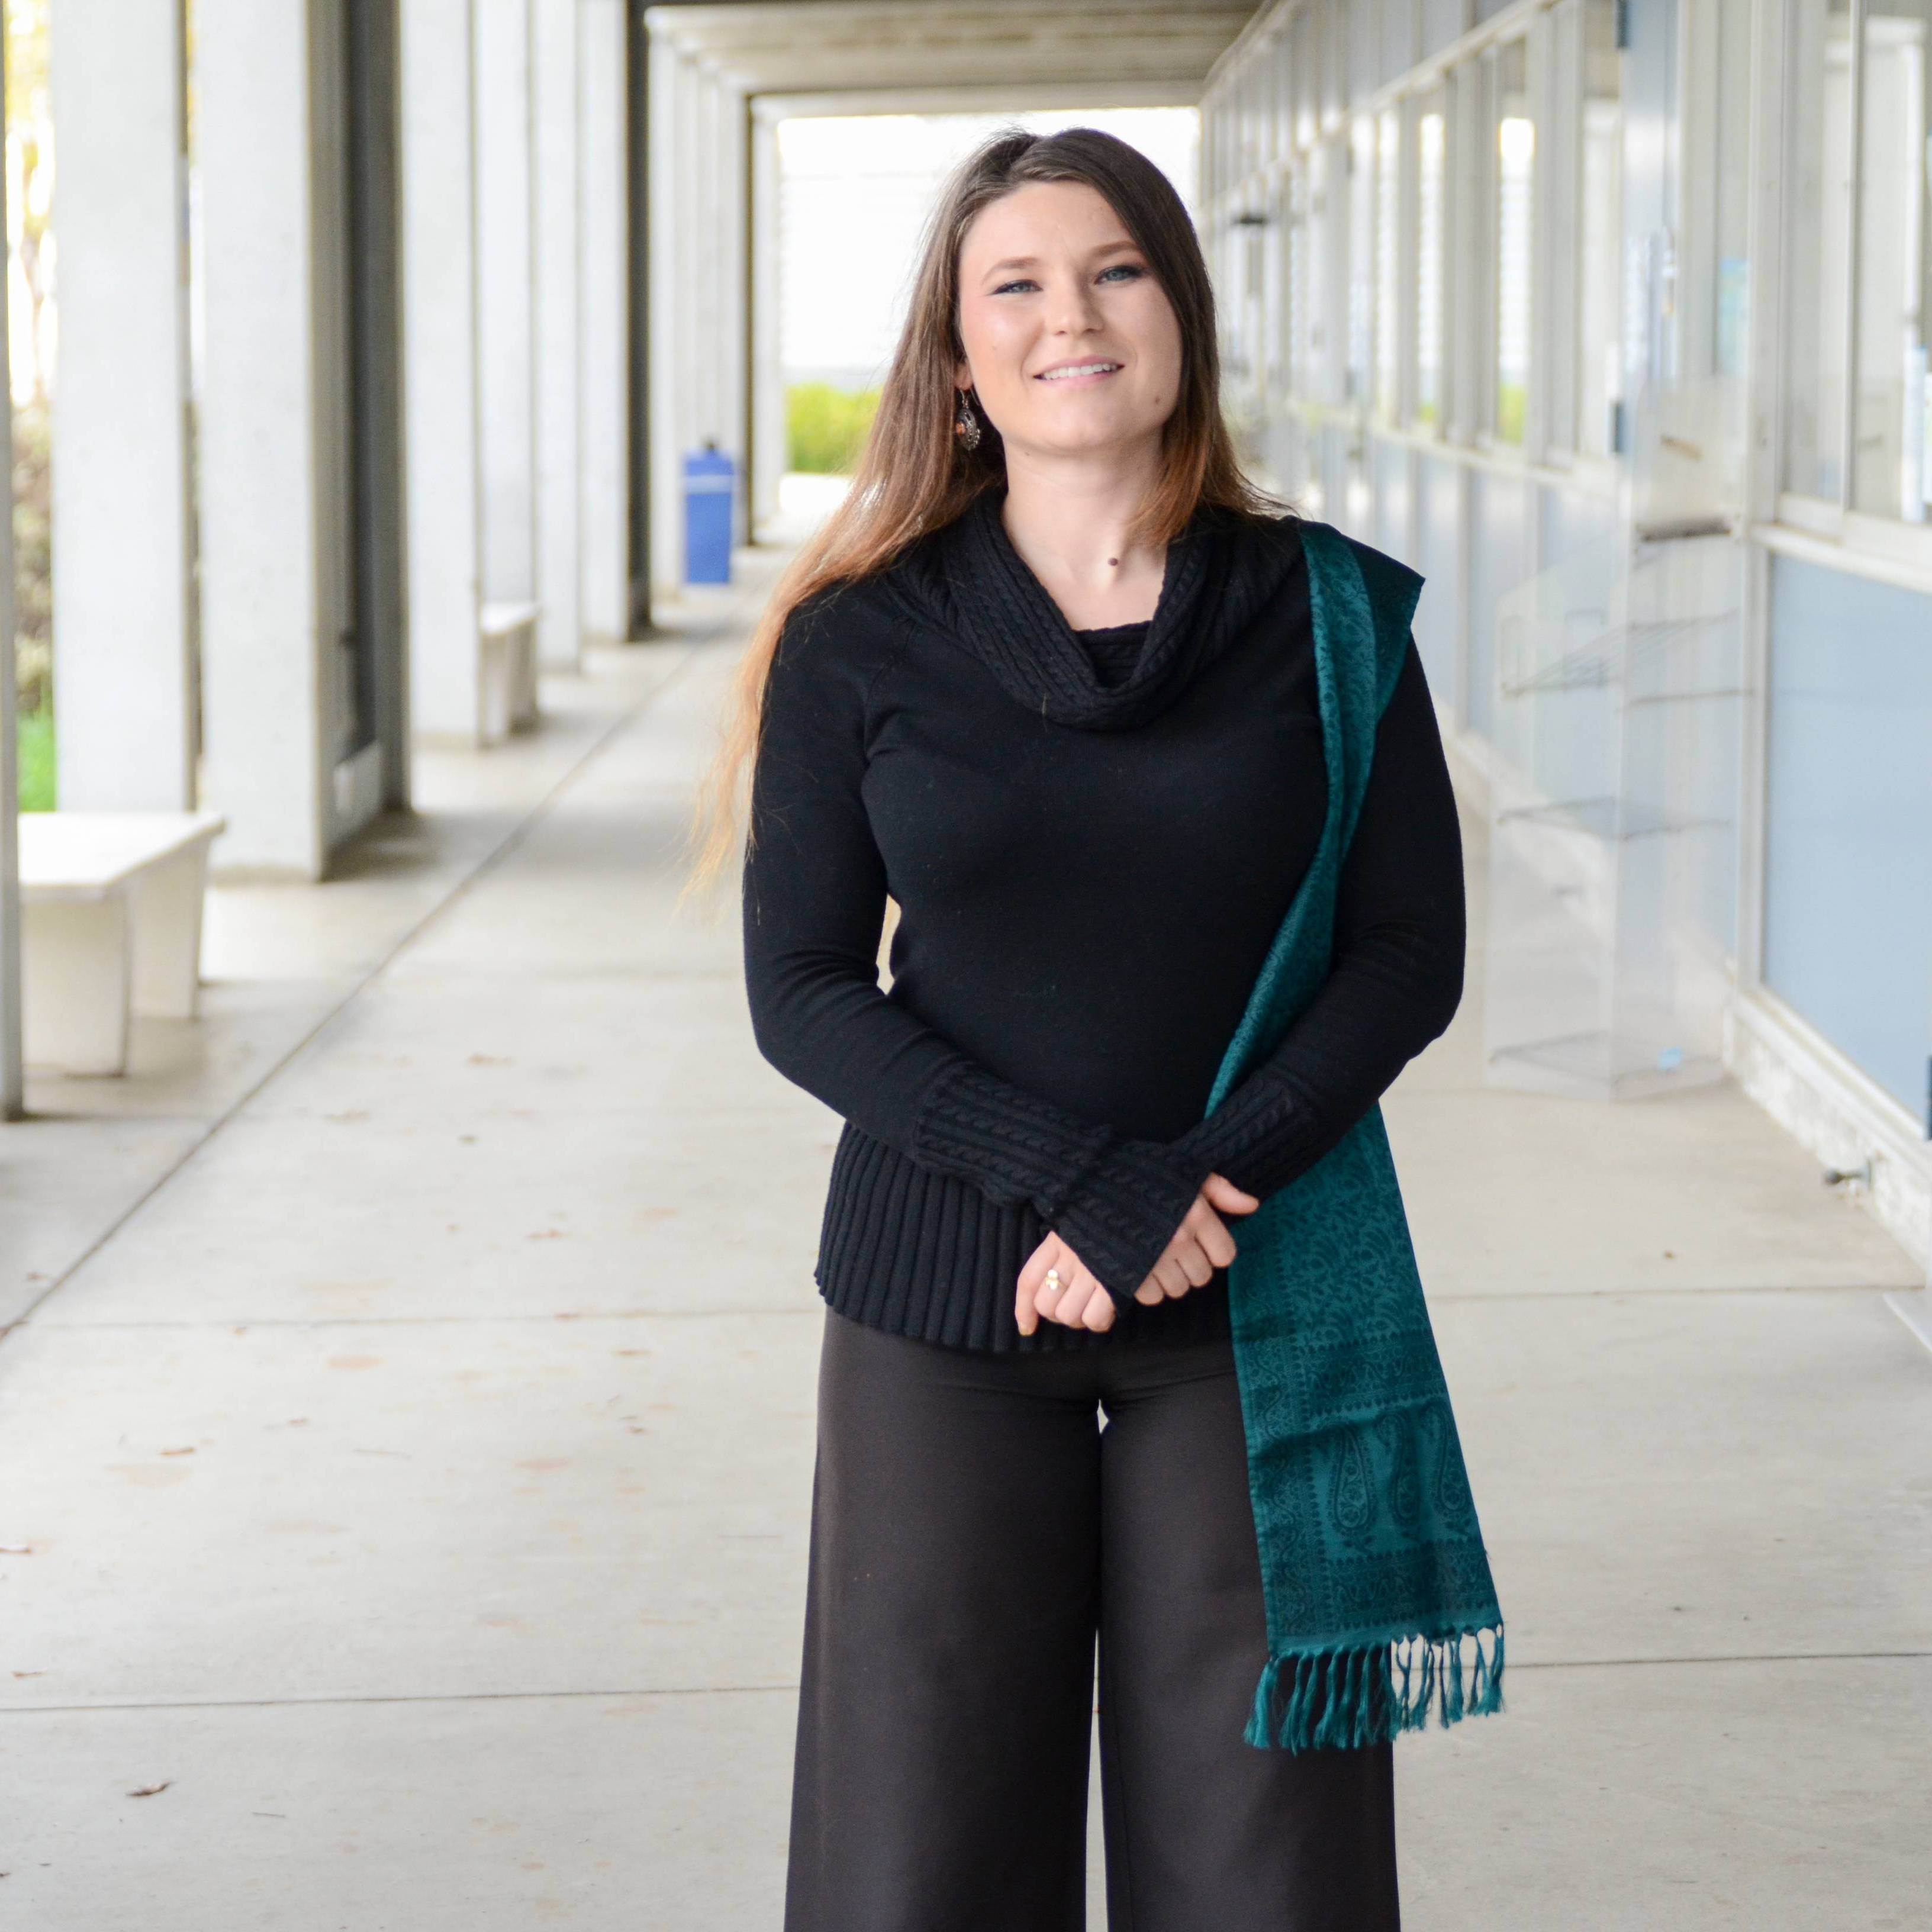 Fashion Technology major Kara Riekstins also used the brown suit as her inspiration, designing a brown and black dress with faux fur trim, also inspired by the brown outfit in the SDHC.